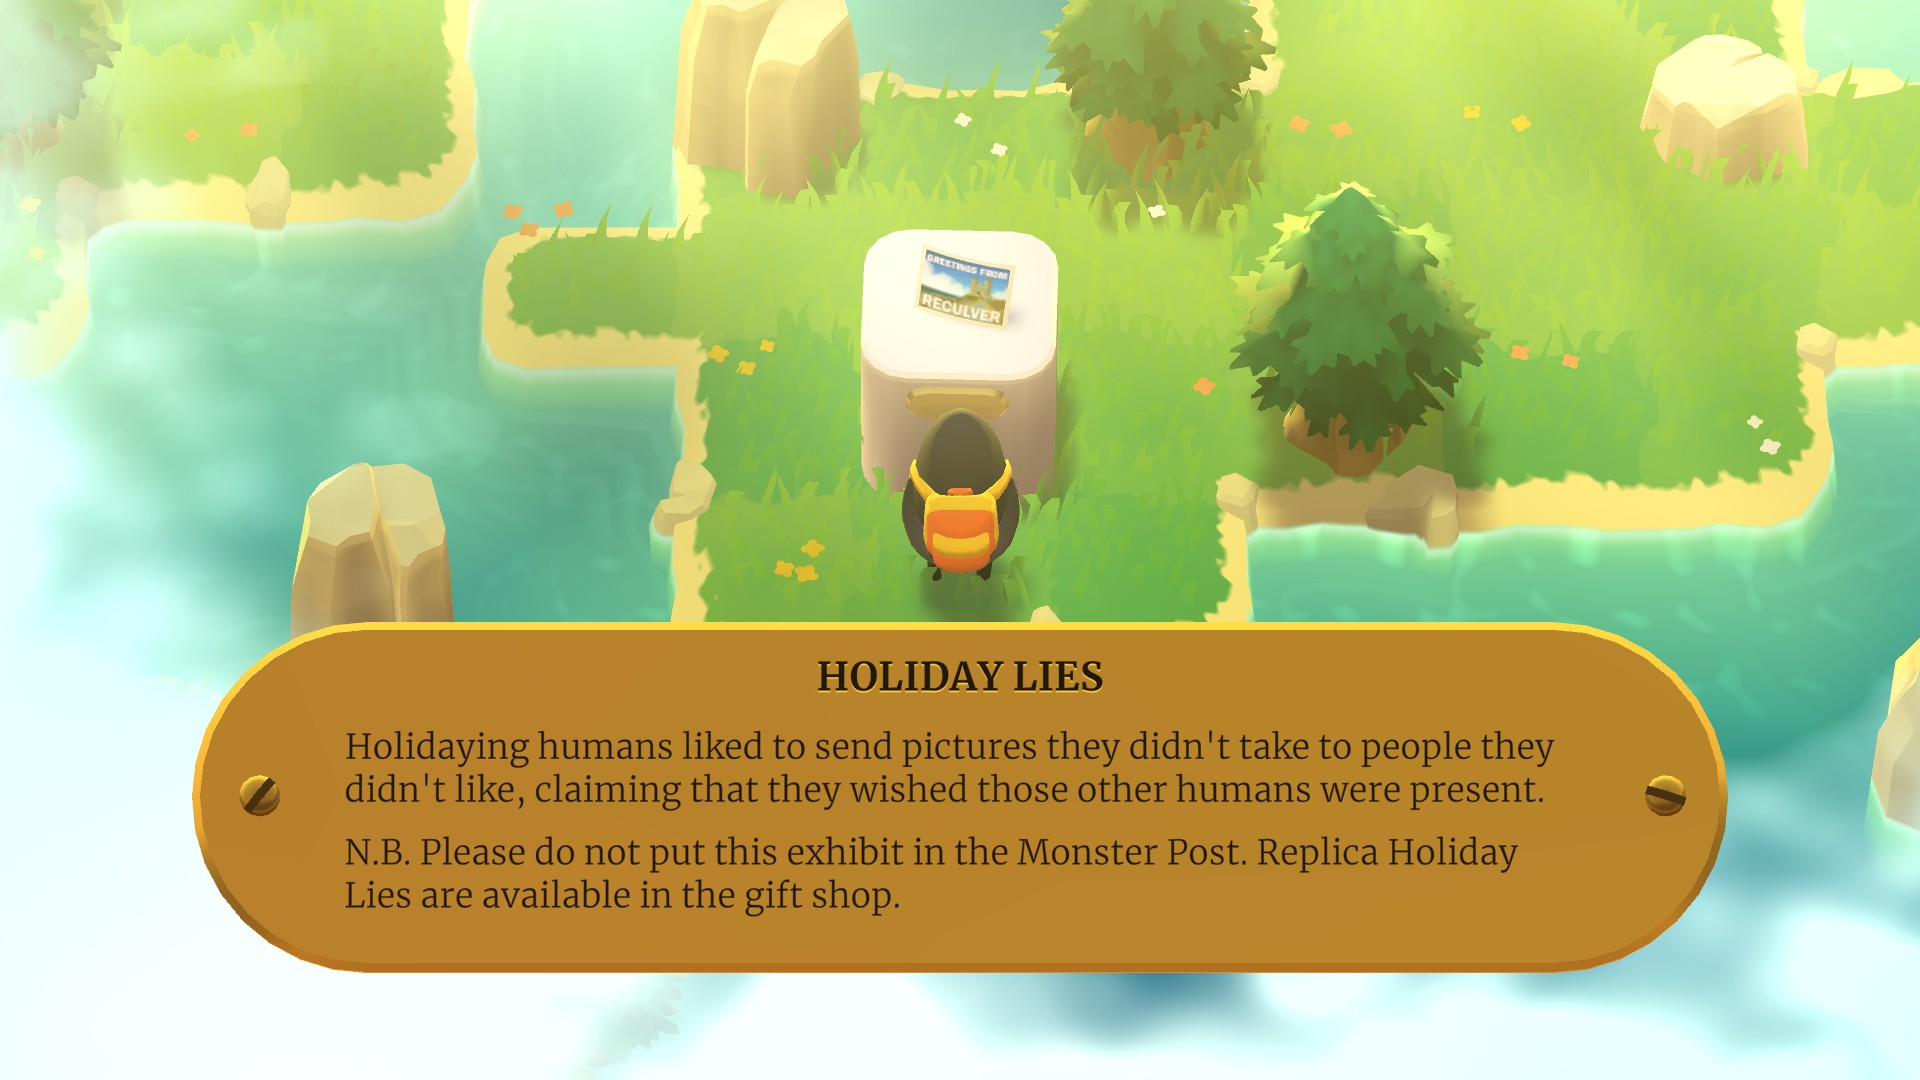 A screenshot from A Monster's Expedition showing the monster in question observing the exhibit of a postcard - 'holiday lies'.